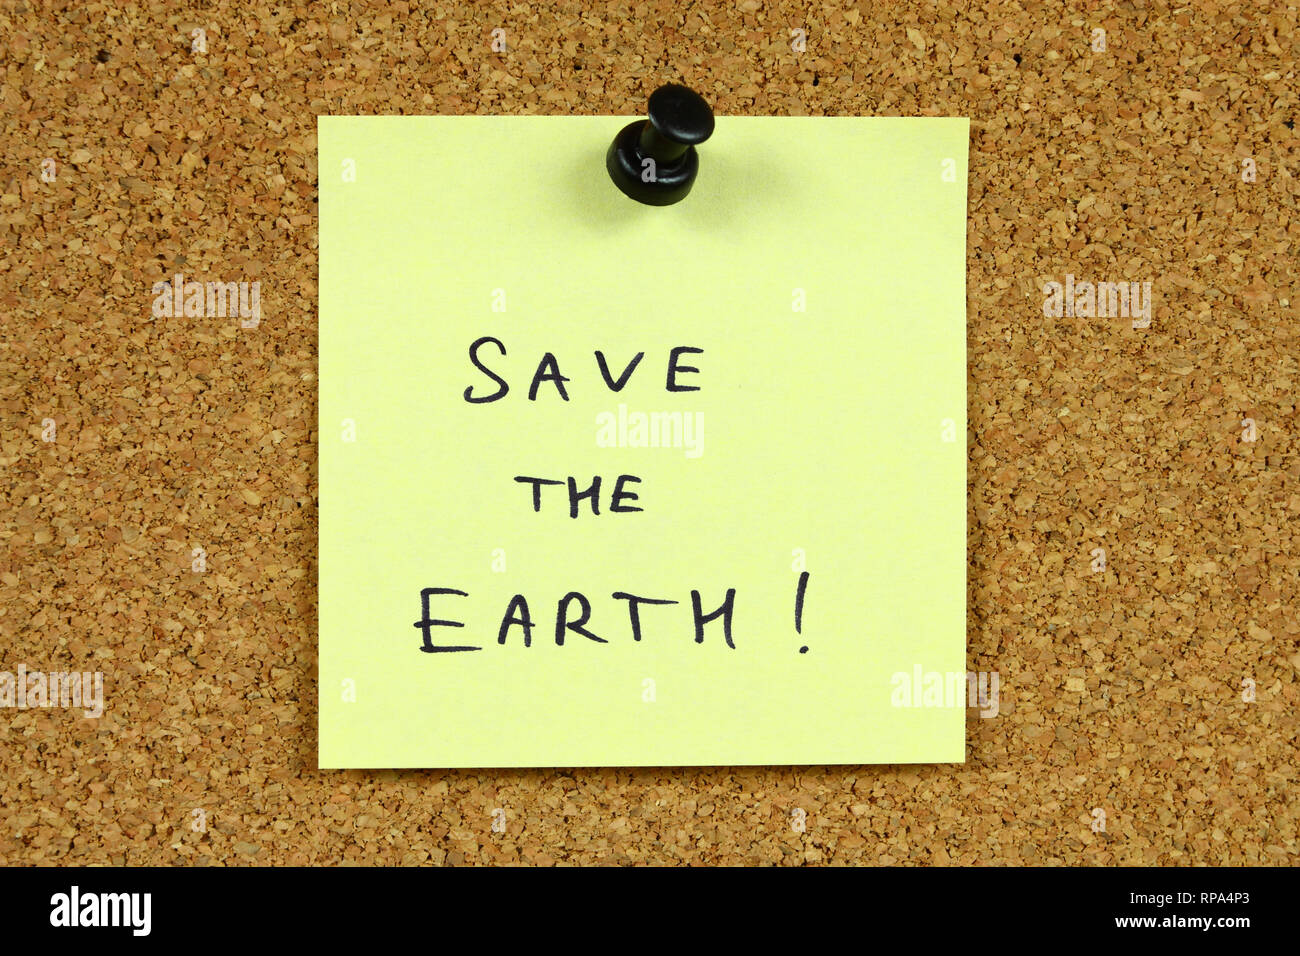 Yellow sticky note pinned to an office notice board. Save the earth - environmental message, ecology concept. - Stock Image